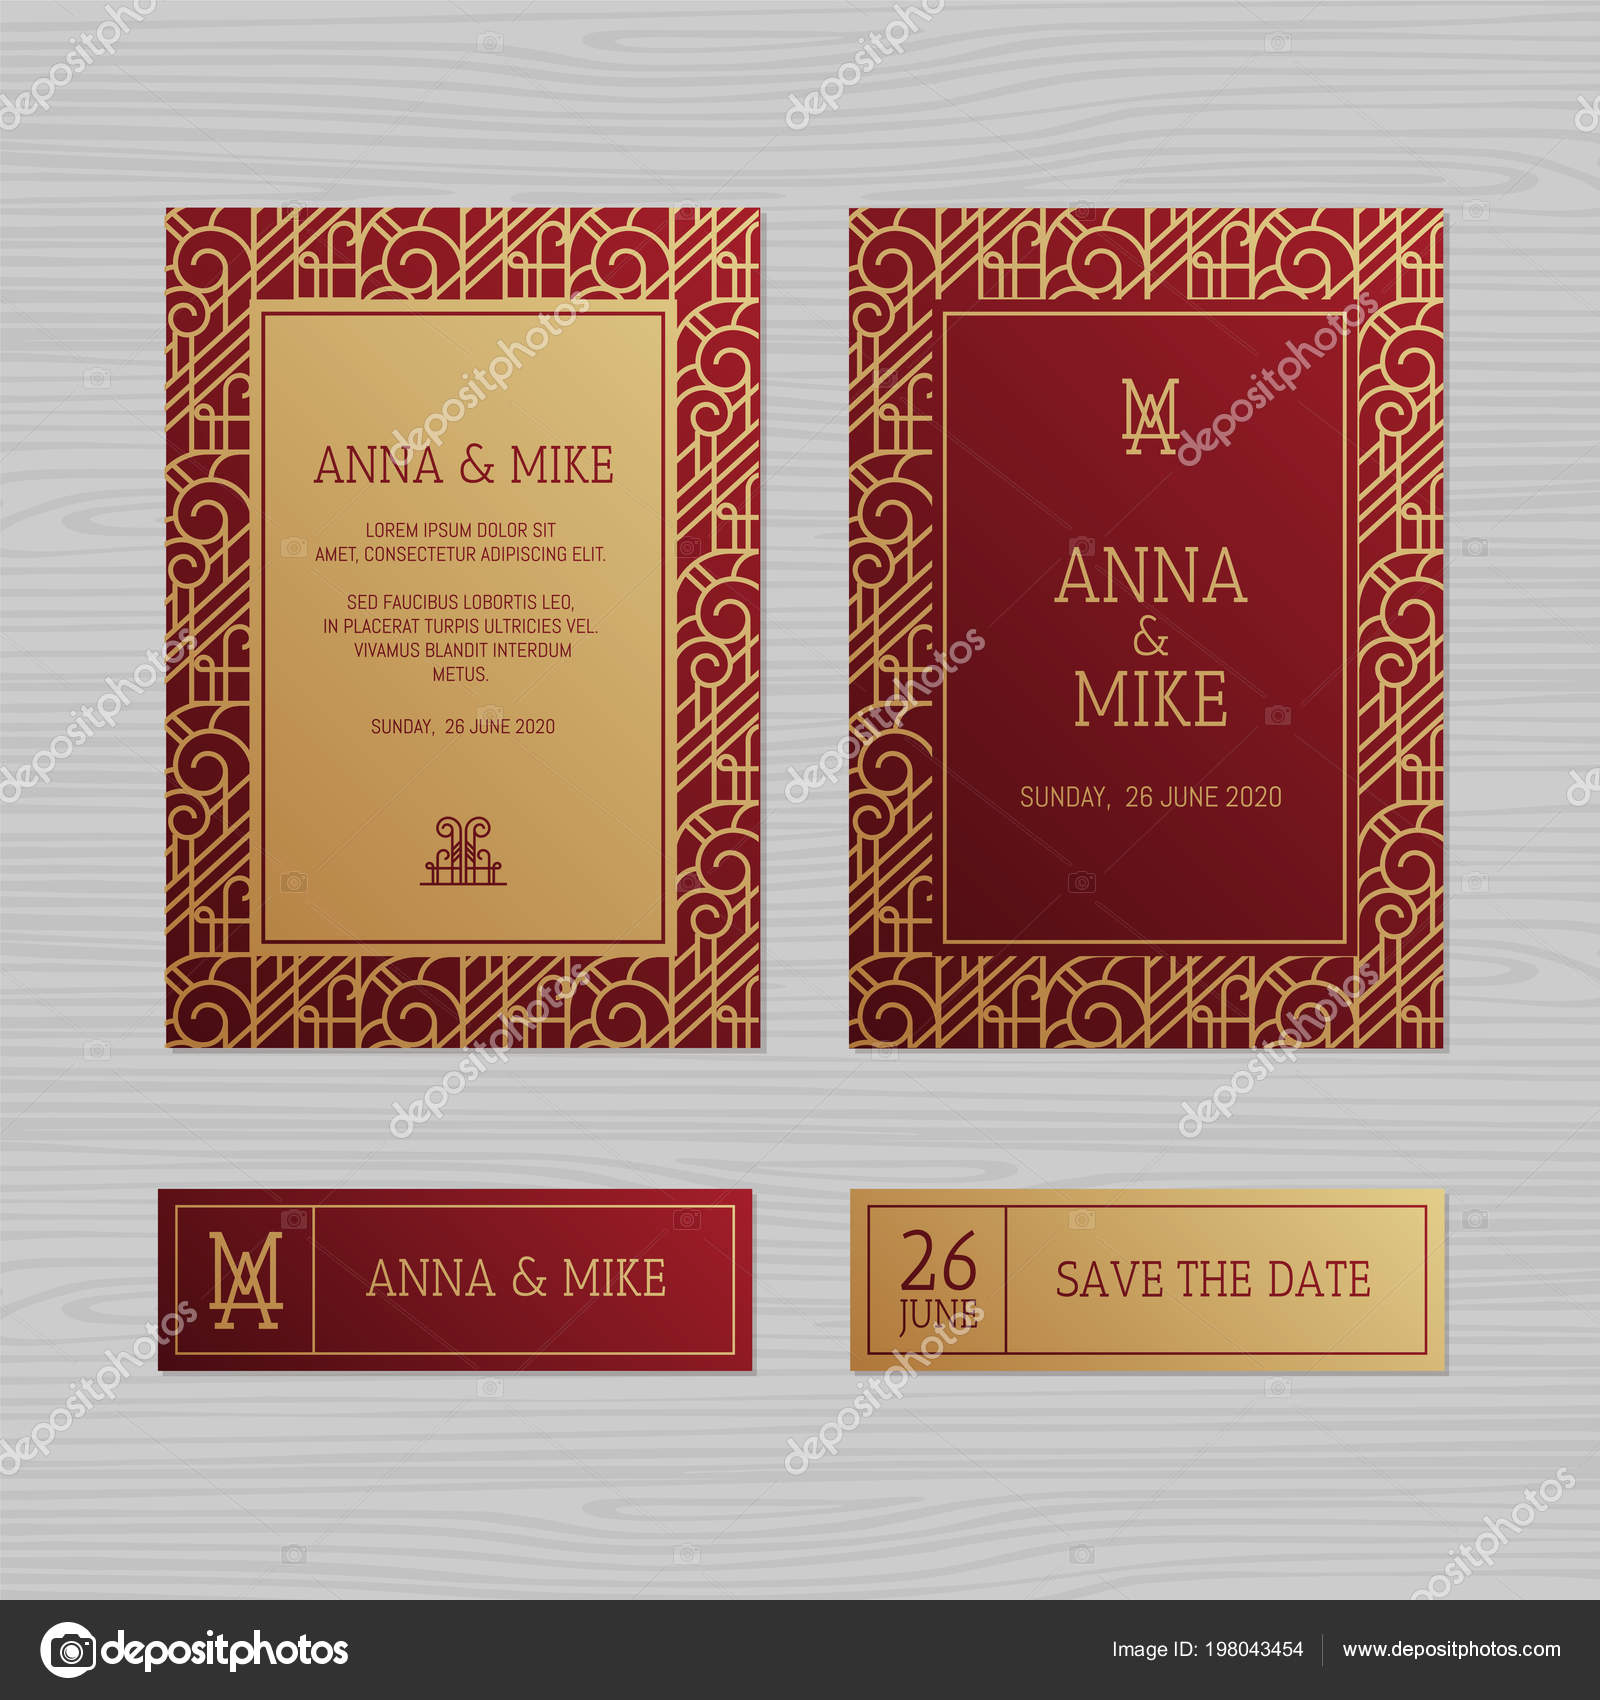 Perfect Art Nouveau Wedding Invitation Image Collection ...